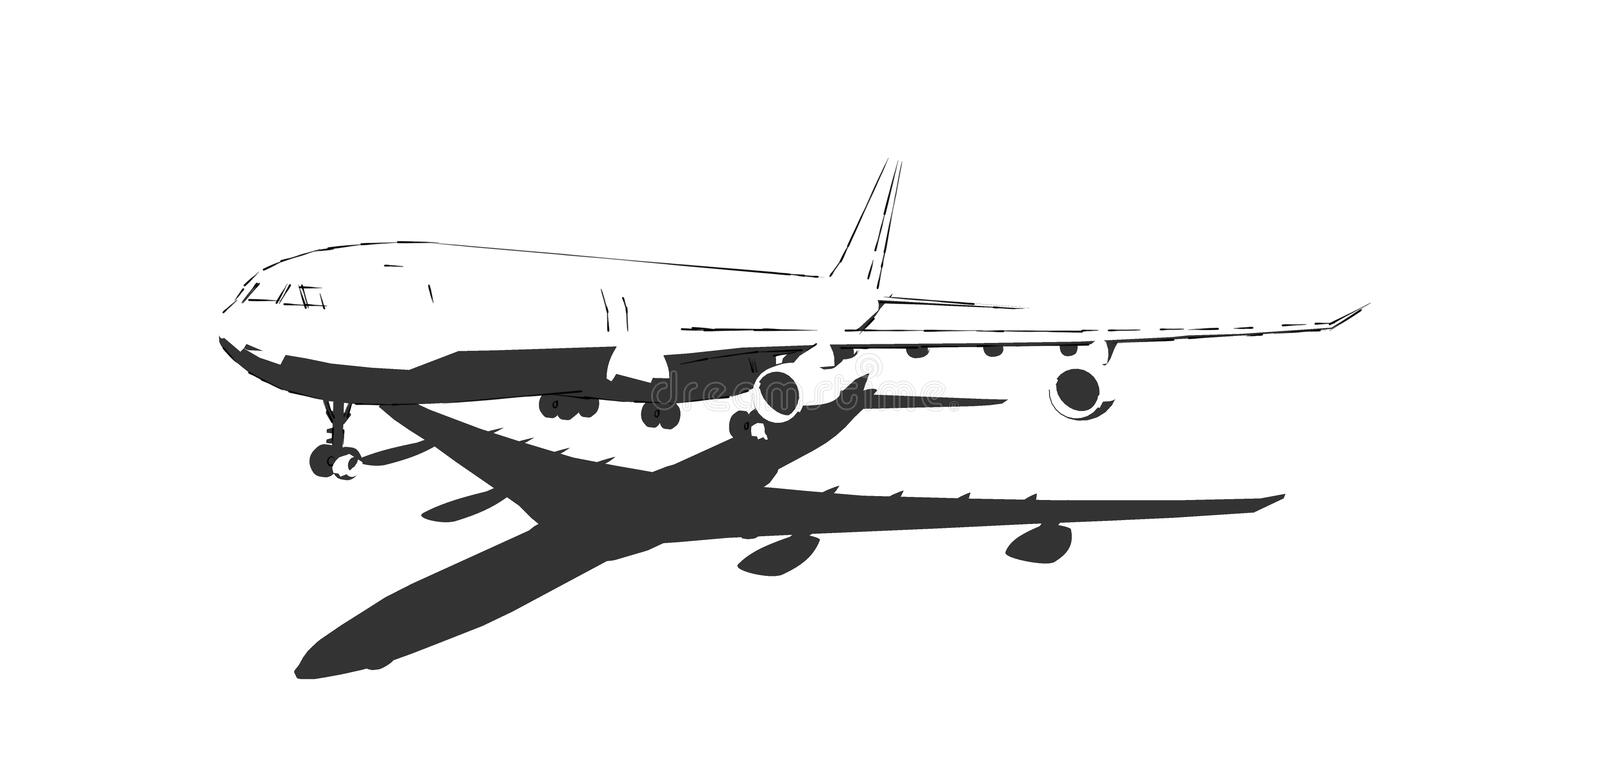 The aircraft, black and white drawing done in ink. Airplane - -ink-black and white stock illustration